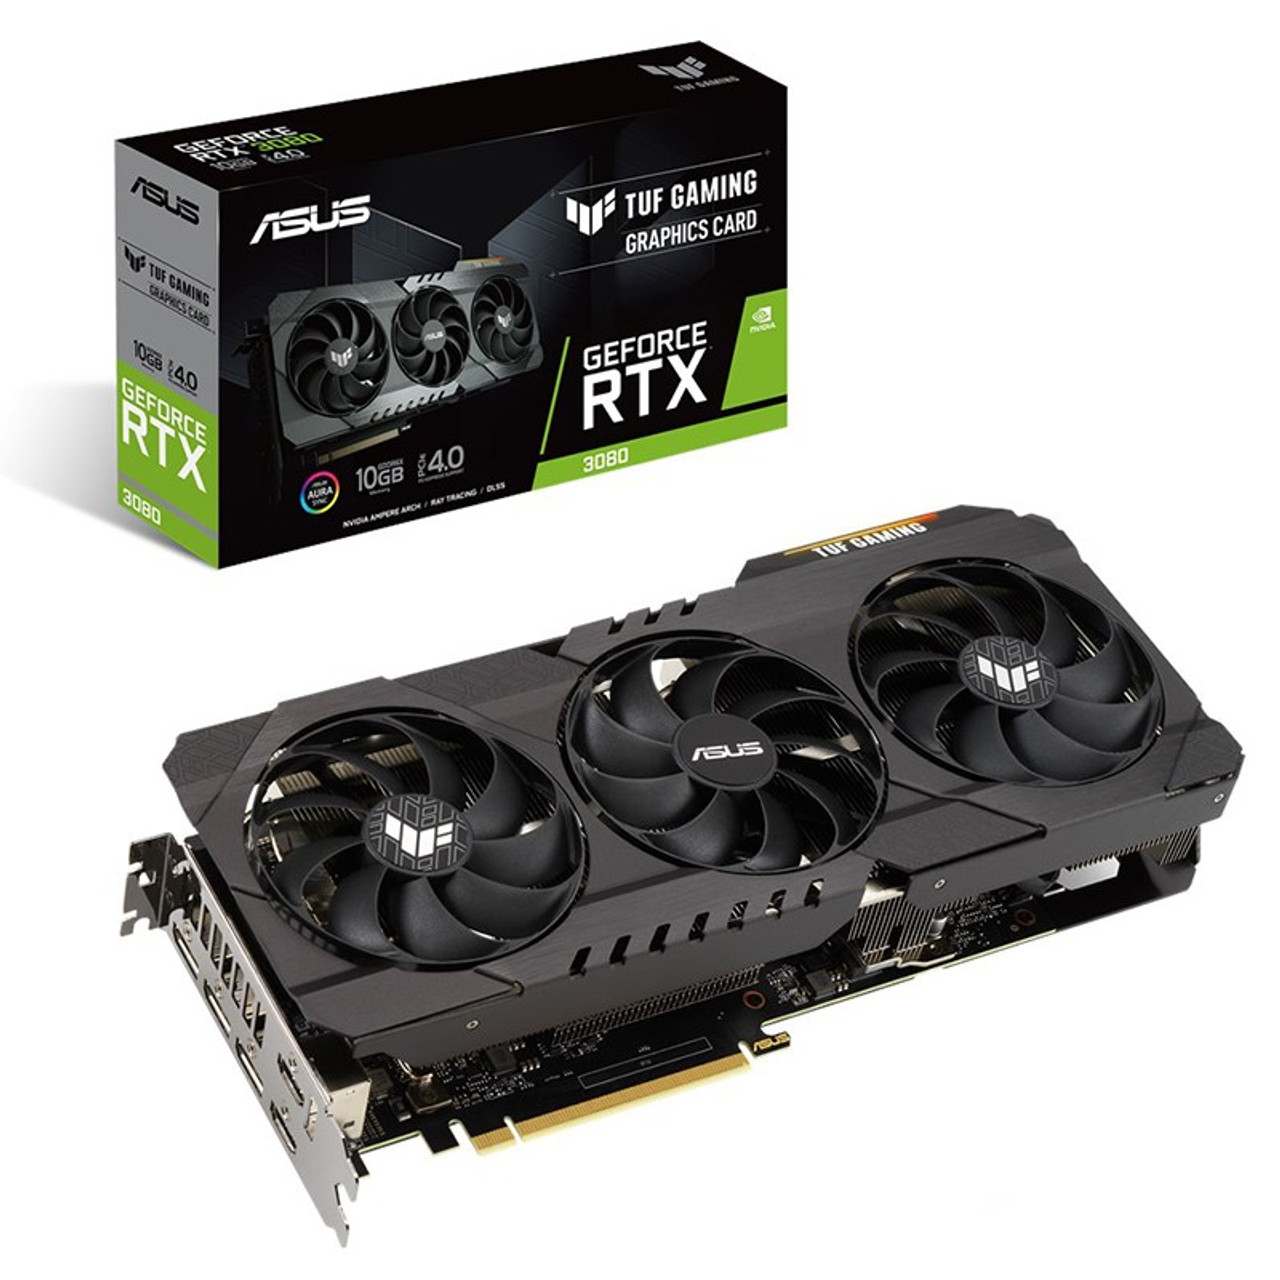 Image for Asus GeForce RTX 3080 TUF Gaming 10GB Video Card CX Computer Superstore